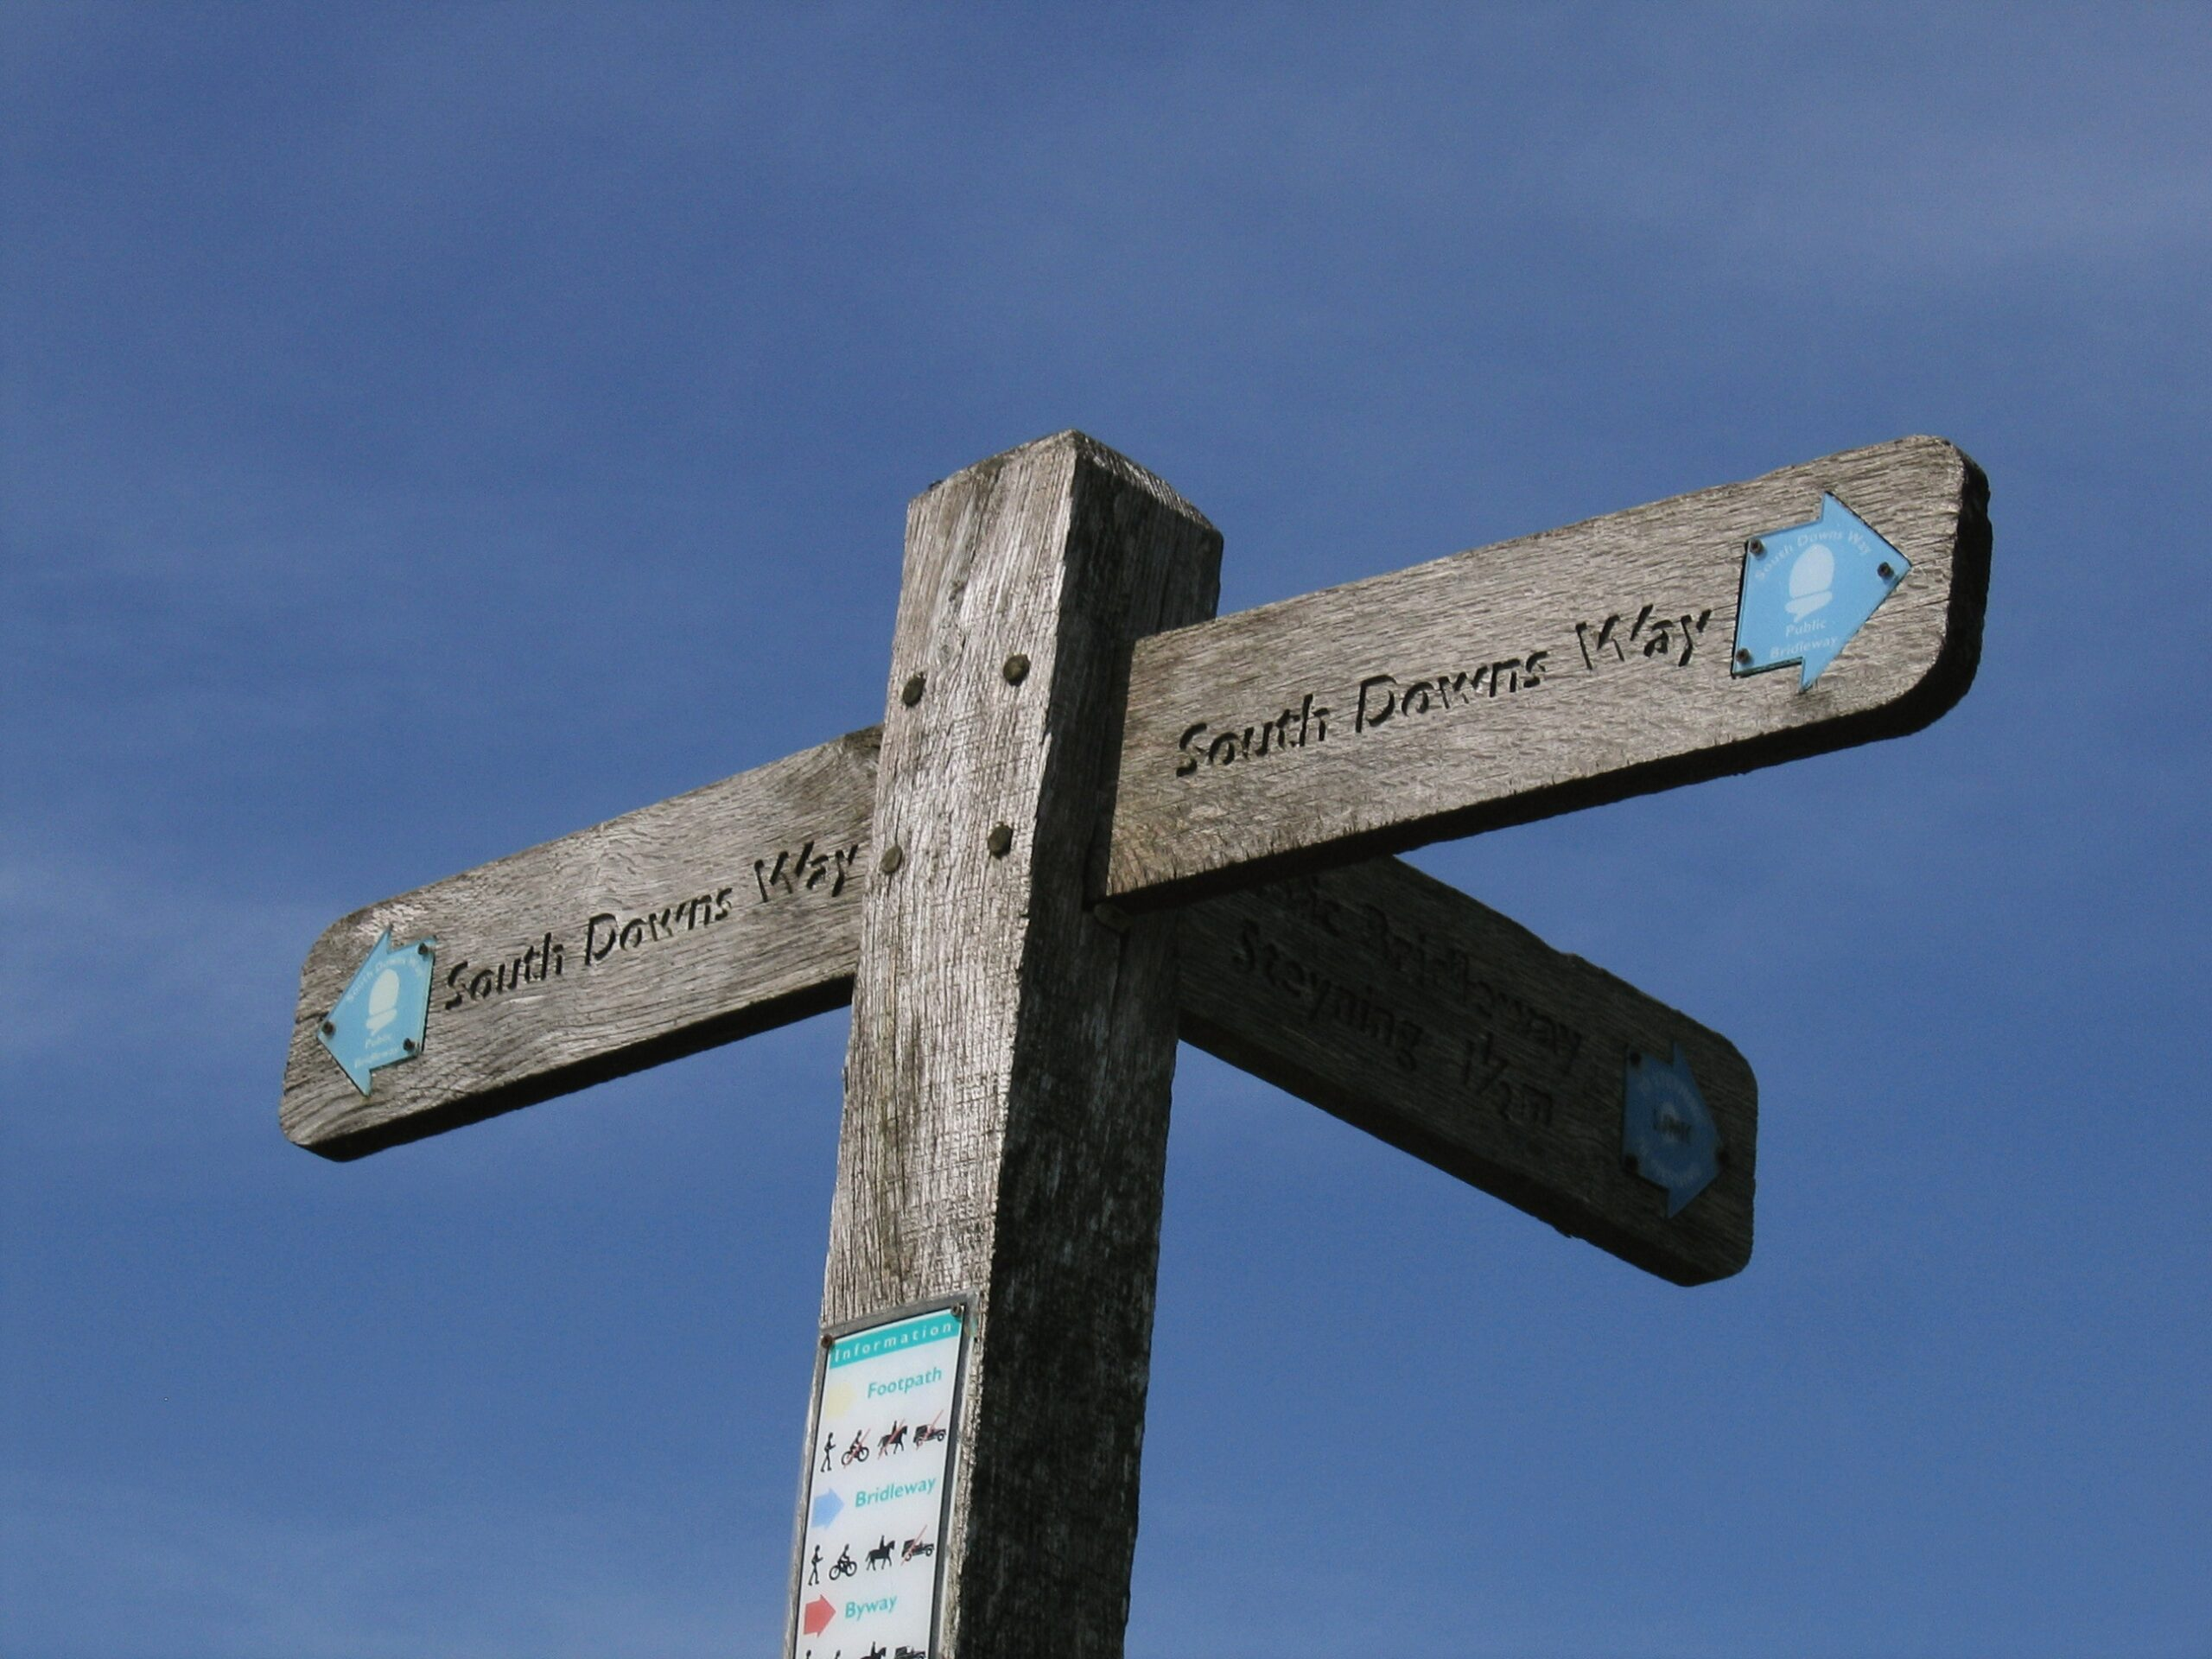 South Downs Way sign post